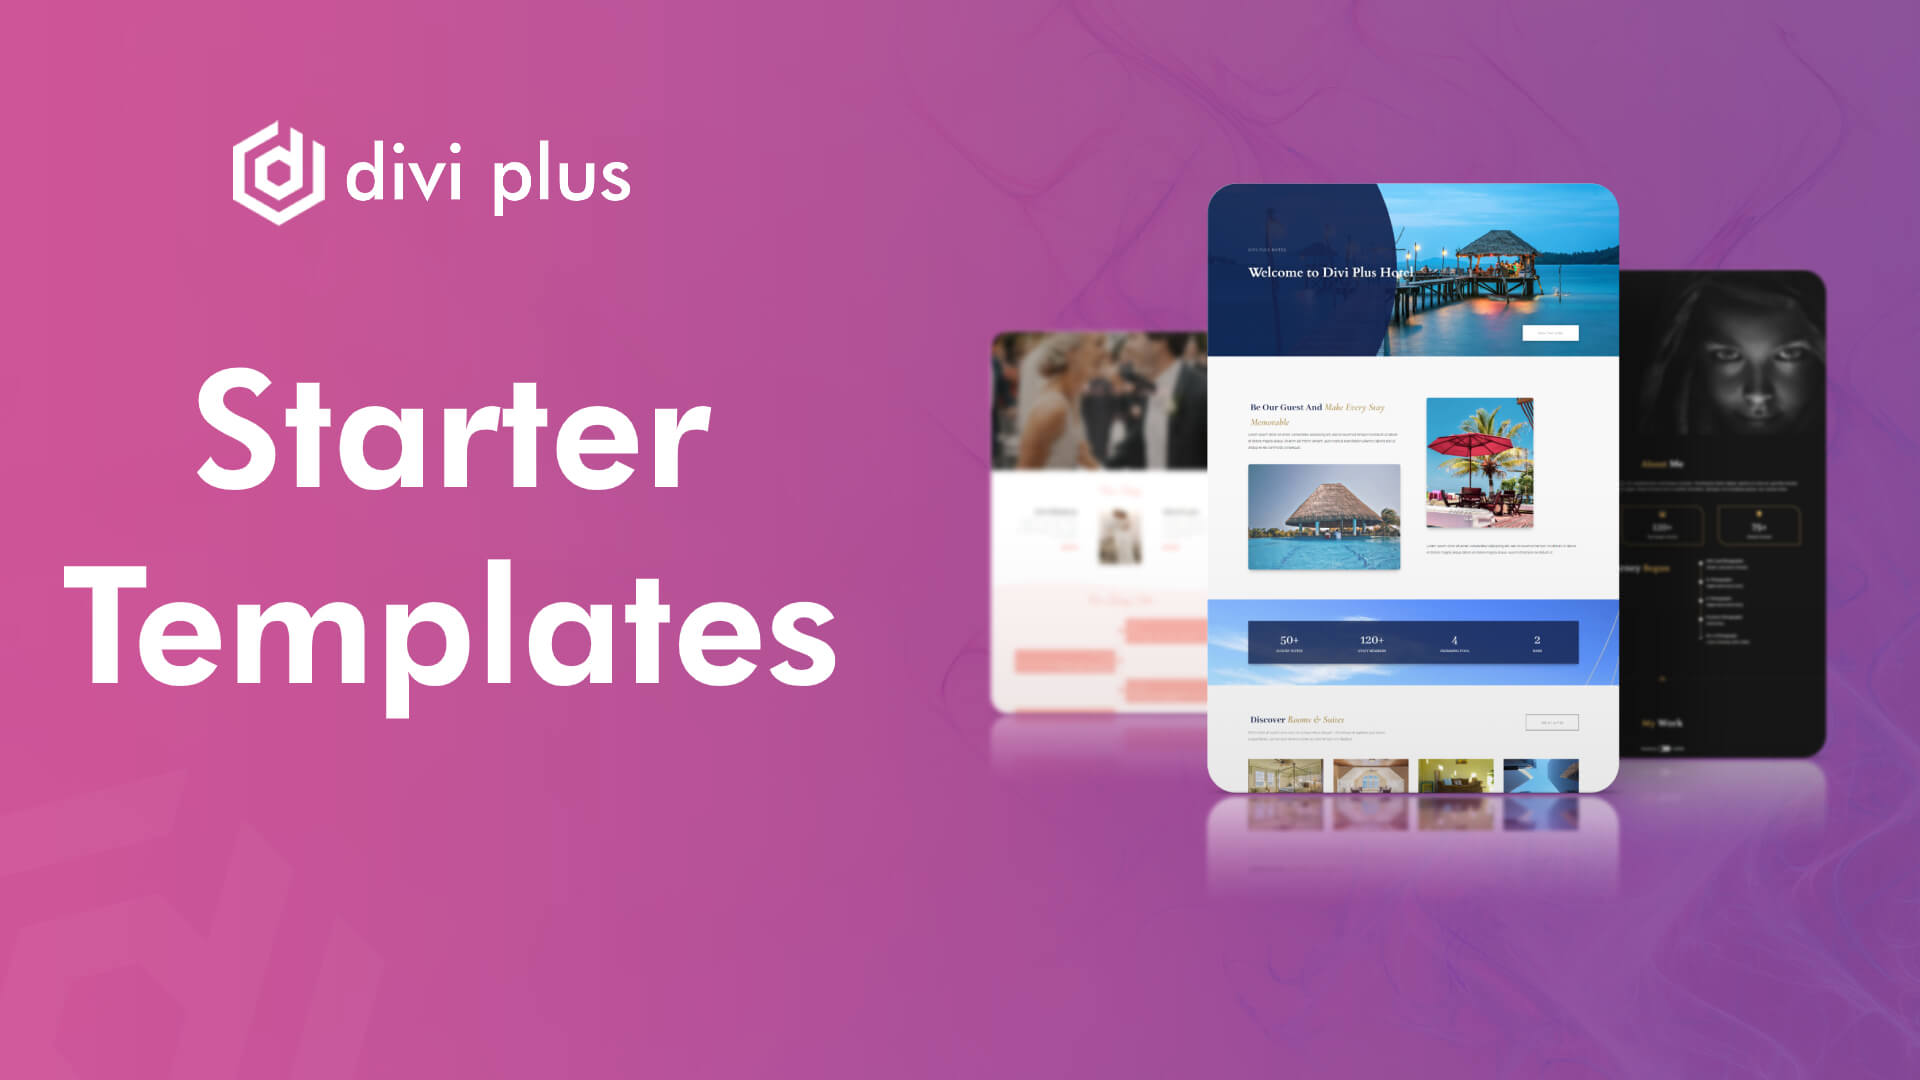 Starter templates available with Divi Plus